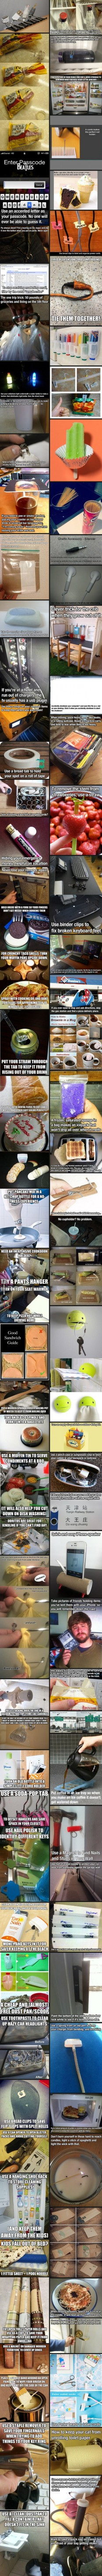 These are some useful tricks - 9GAG